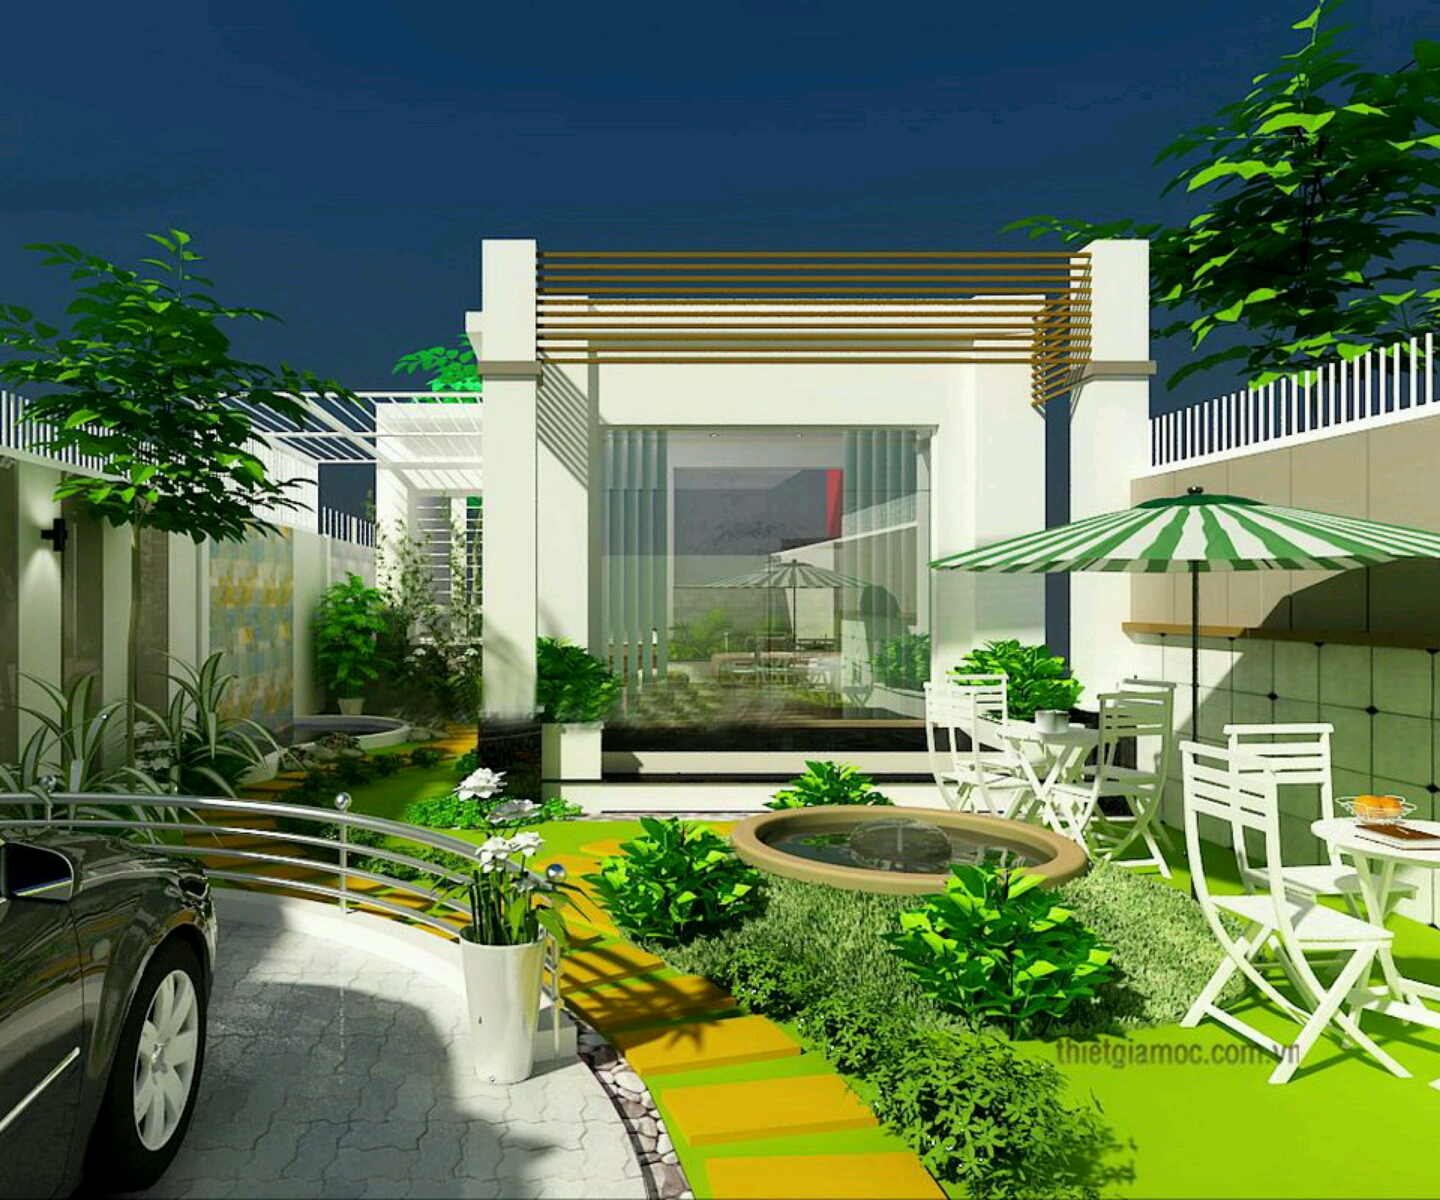 New home designs latest modern homes beautiful garden for Home garden landscape design